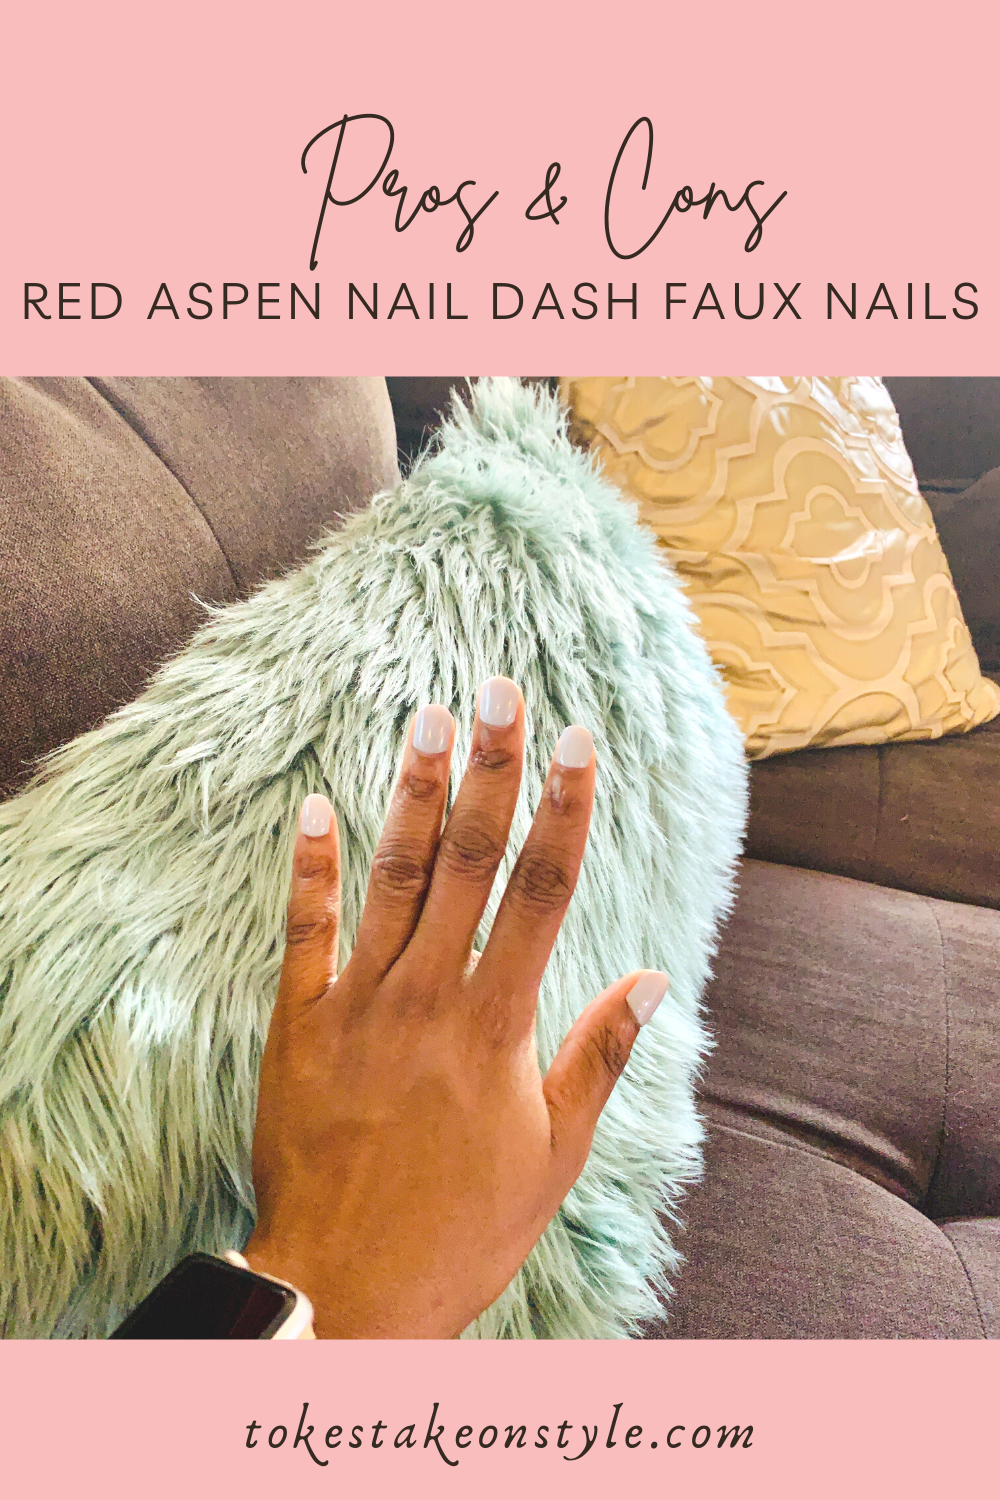 black woman's hands showing red aspen nail dash press on nails in a grey manicure